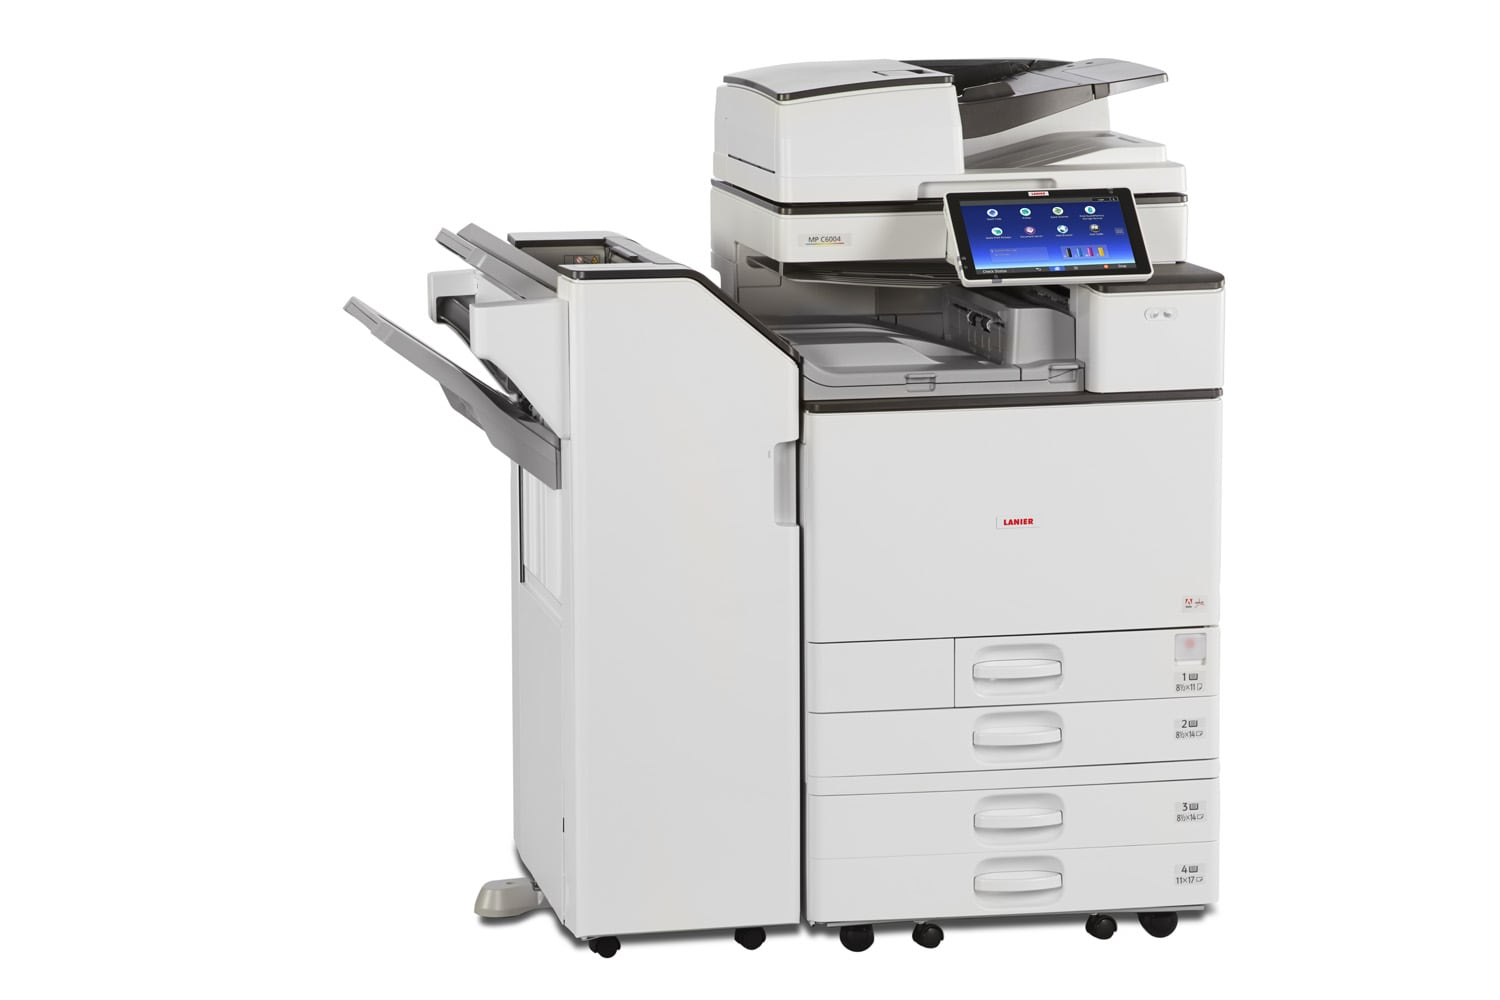 Ricoh MPC4504 colour multifunction